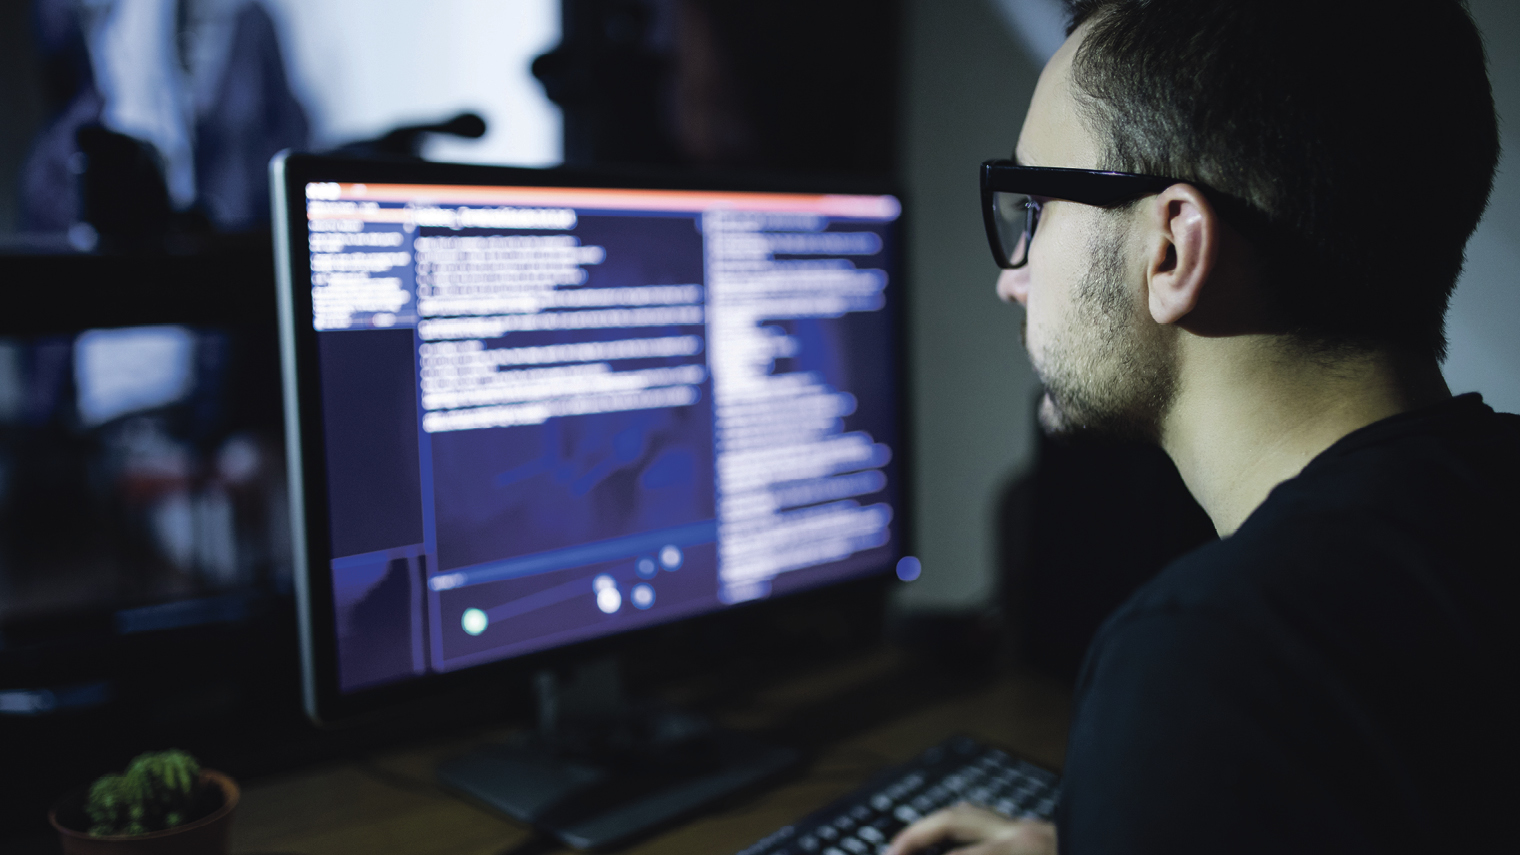 man looking at screen with code on it